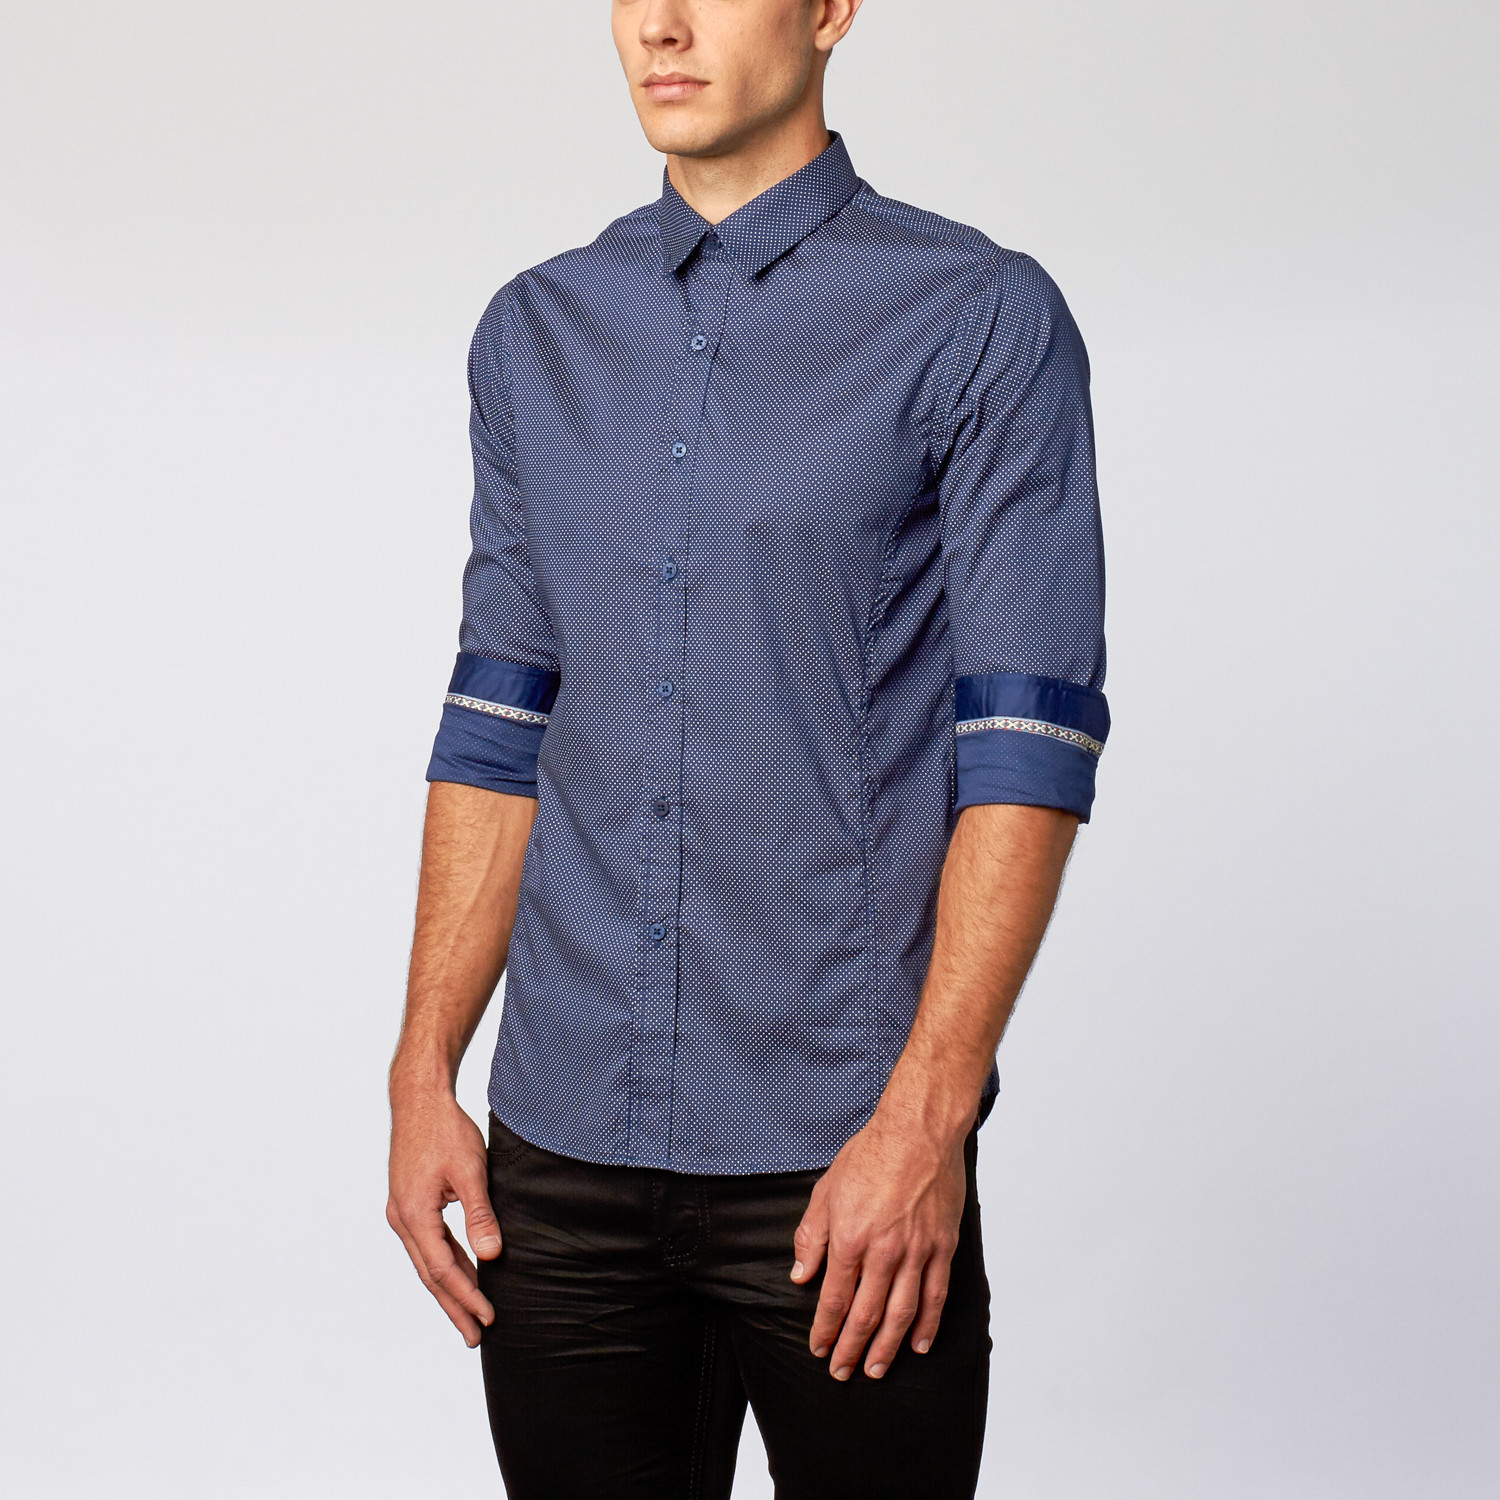 Button Up Shirt Micro Dash Navy S Platini Touch